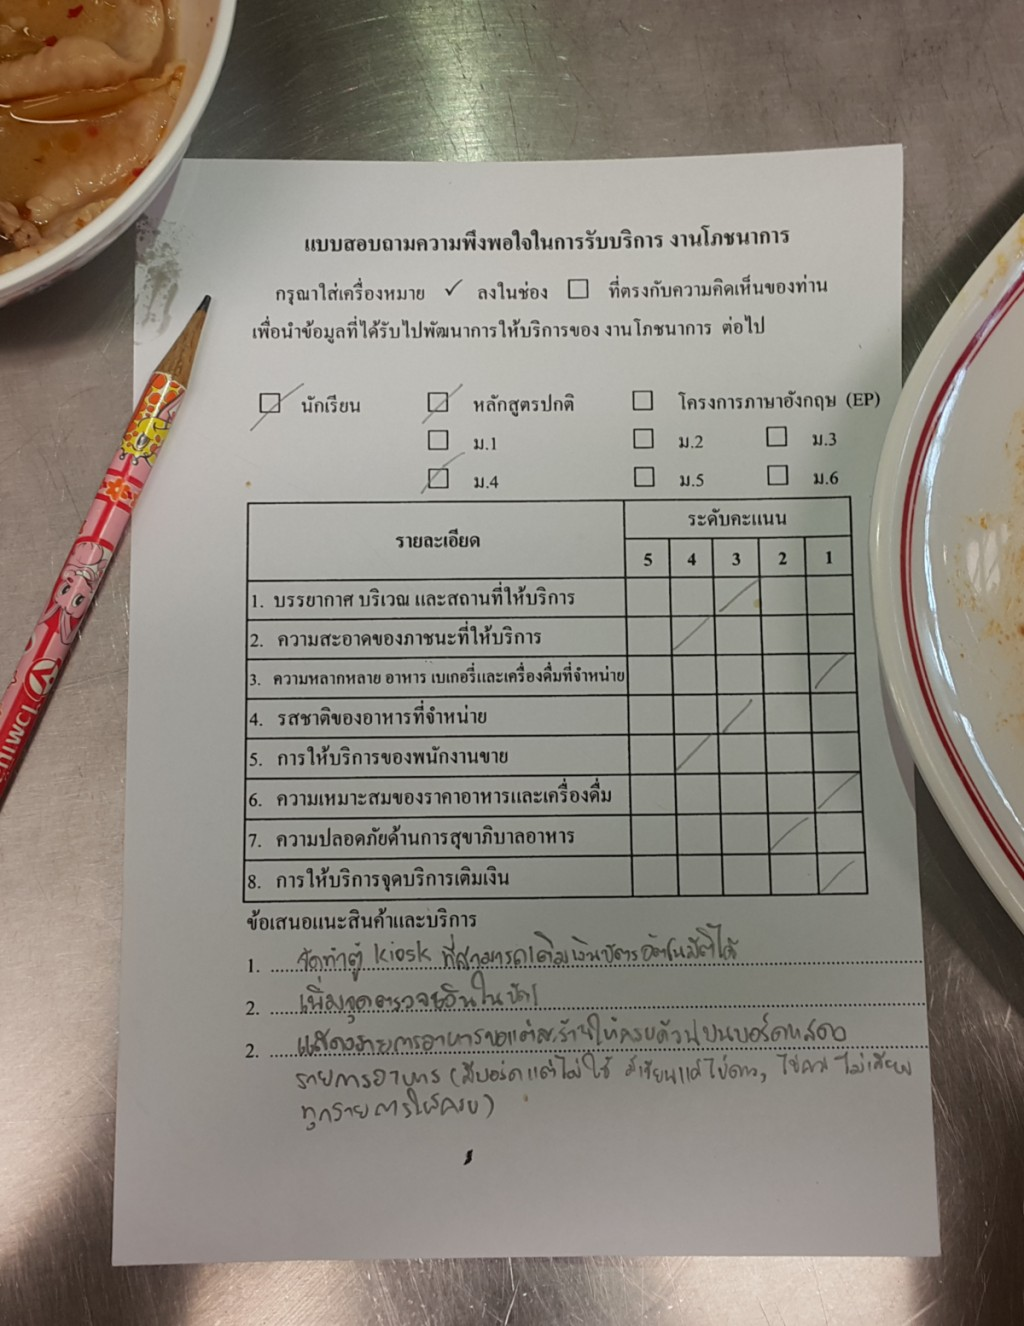 016 Research Paper 1200px Questionaire In Thai Market Questionnaire Sample Questions Striking Pdf Large